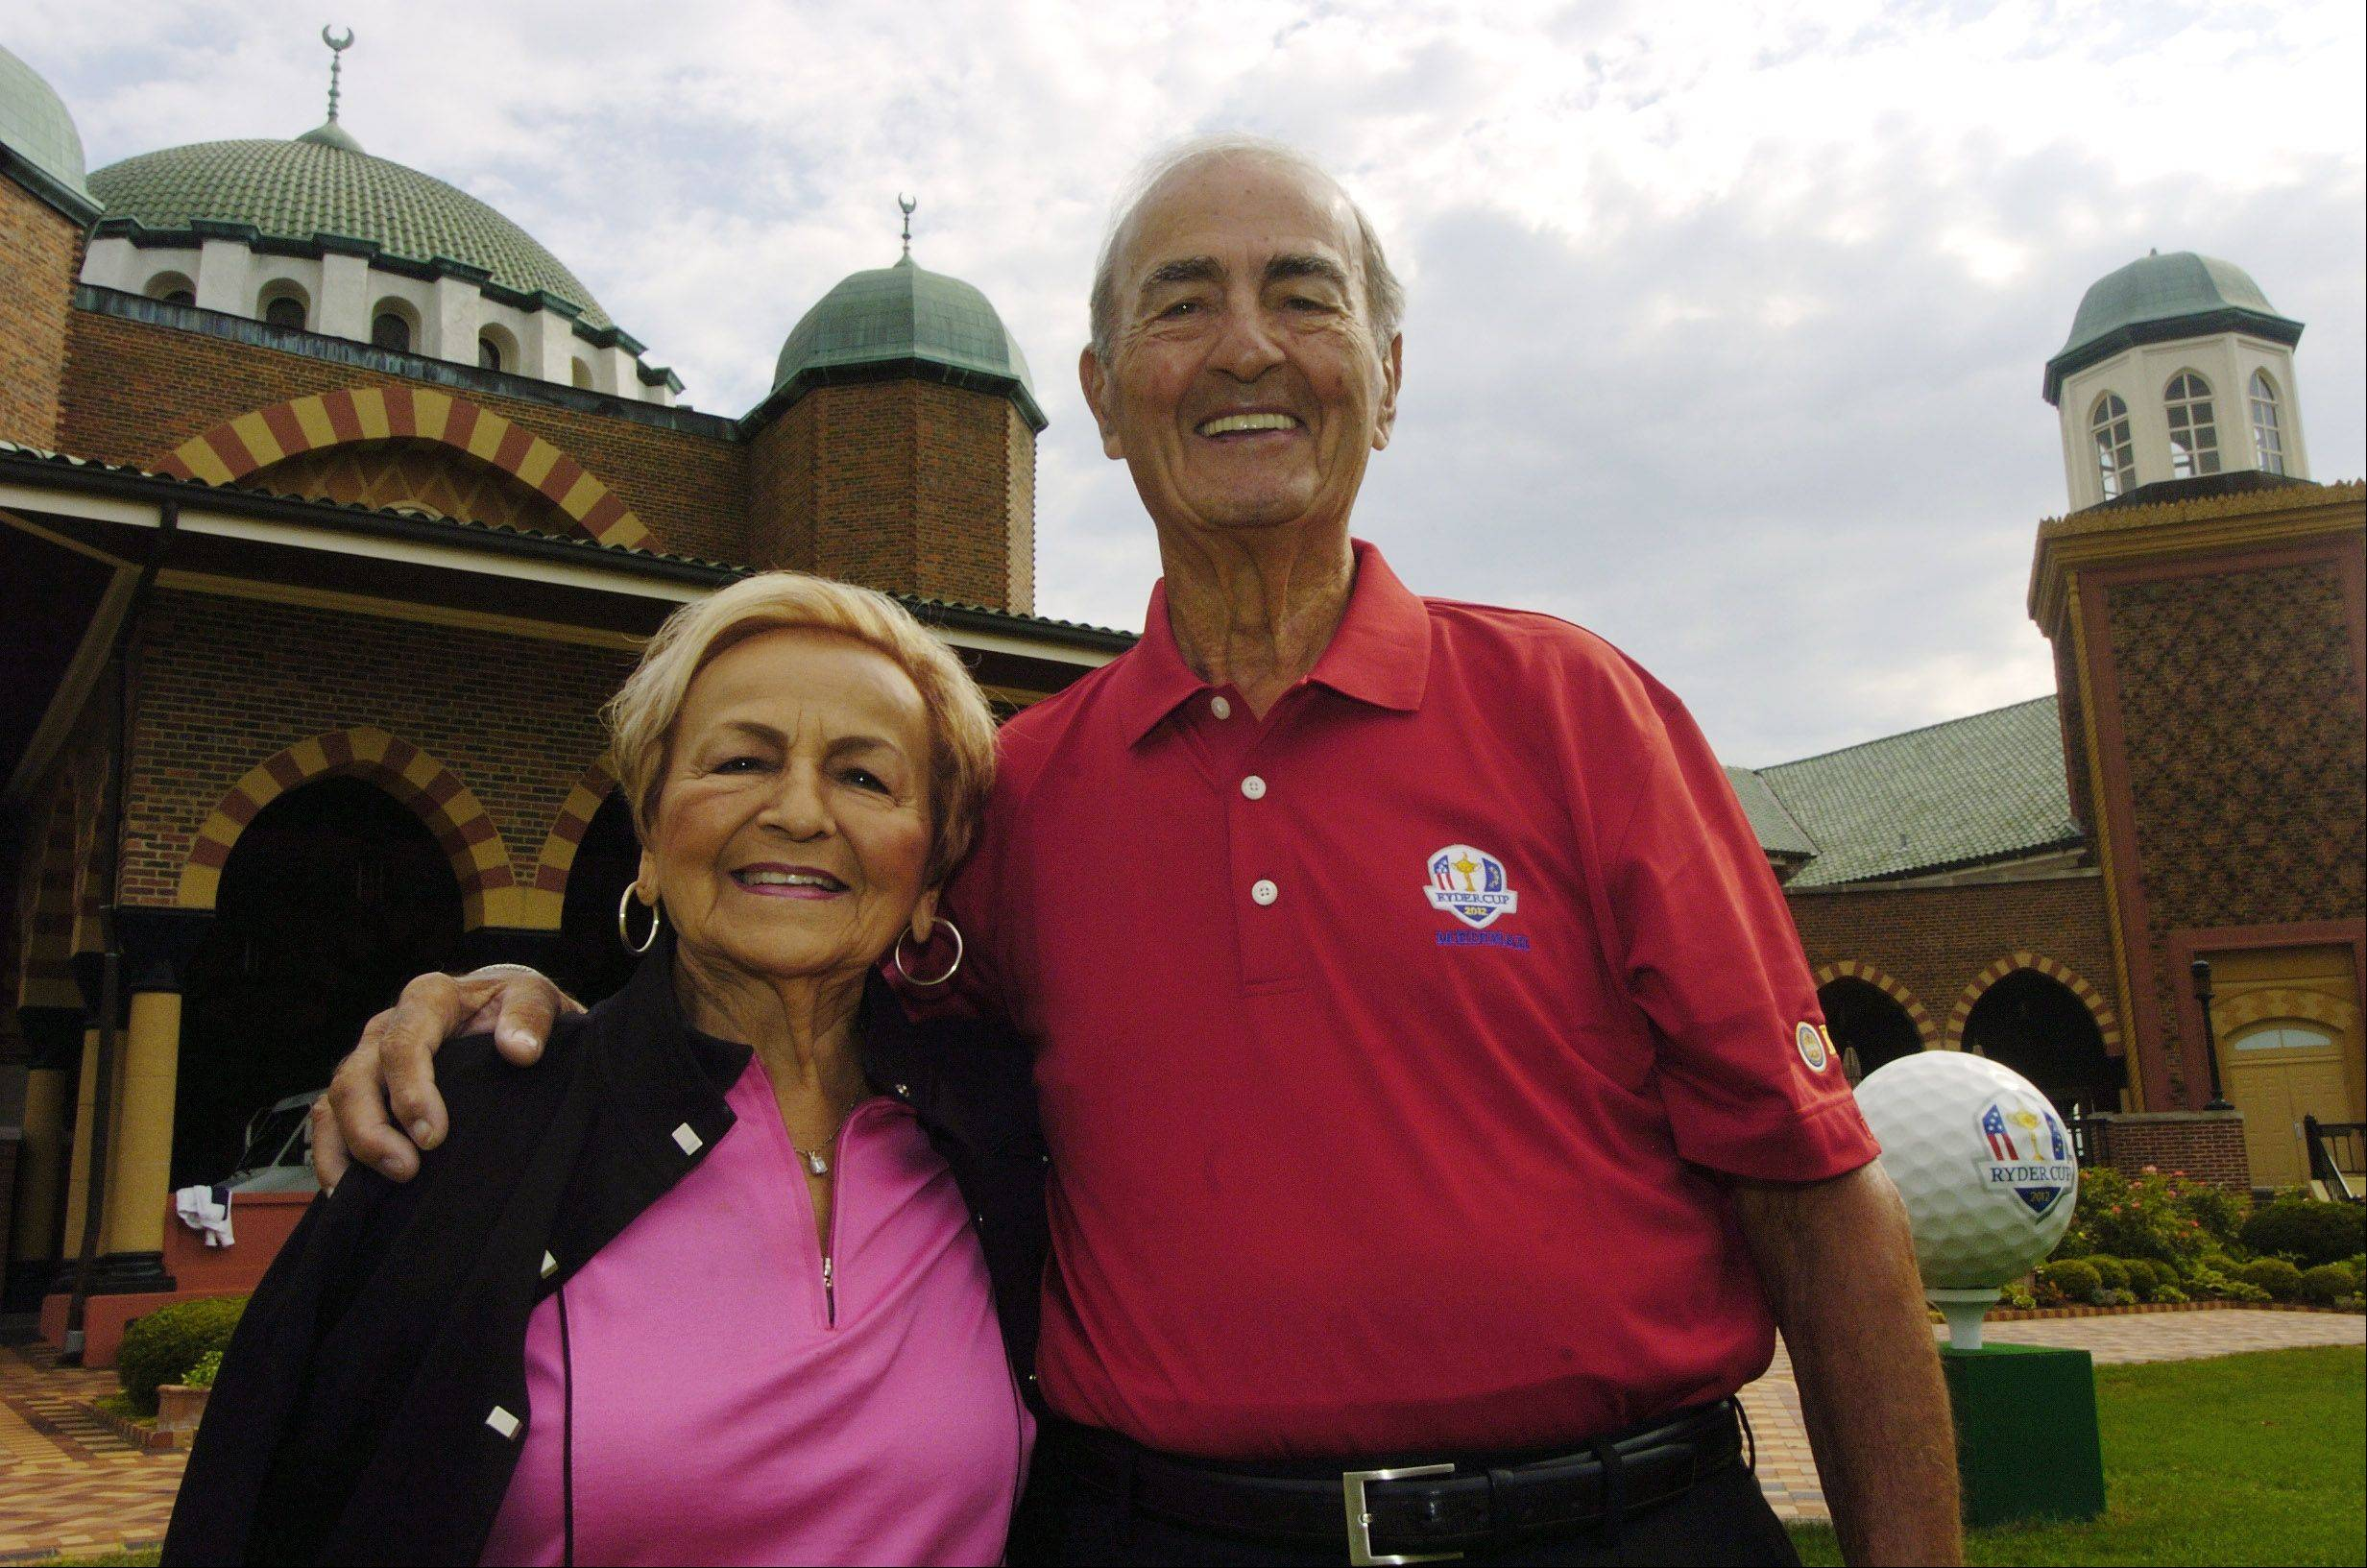 JOE LEWNARD/jlewnard@dailyherald.comBertha, 87, and Peter Broustis, soon to turn 89, of Park Ridge will be the oldest volunteers working at the Ryder Cup golf tournament at the Medinah Country Club later this month.